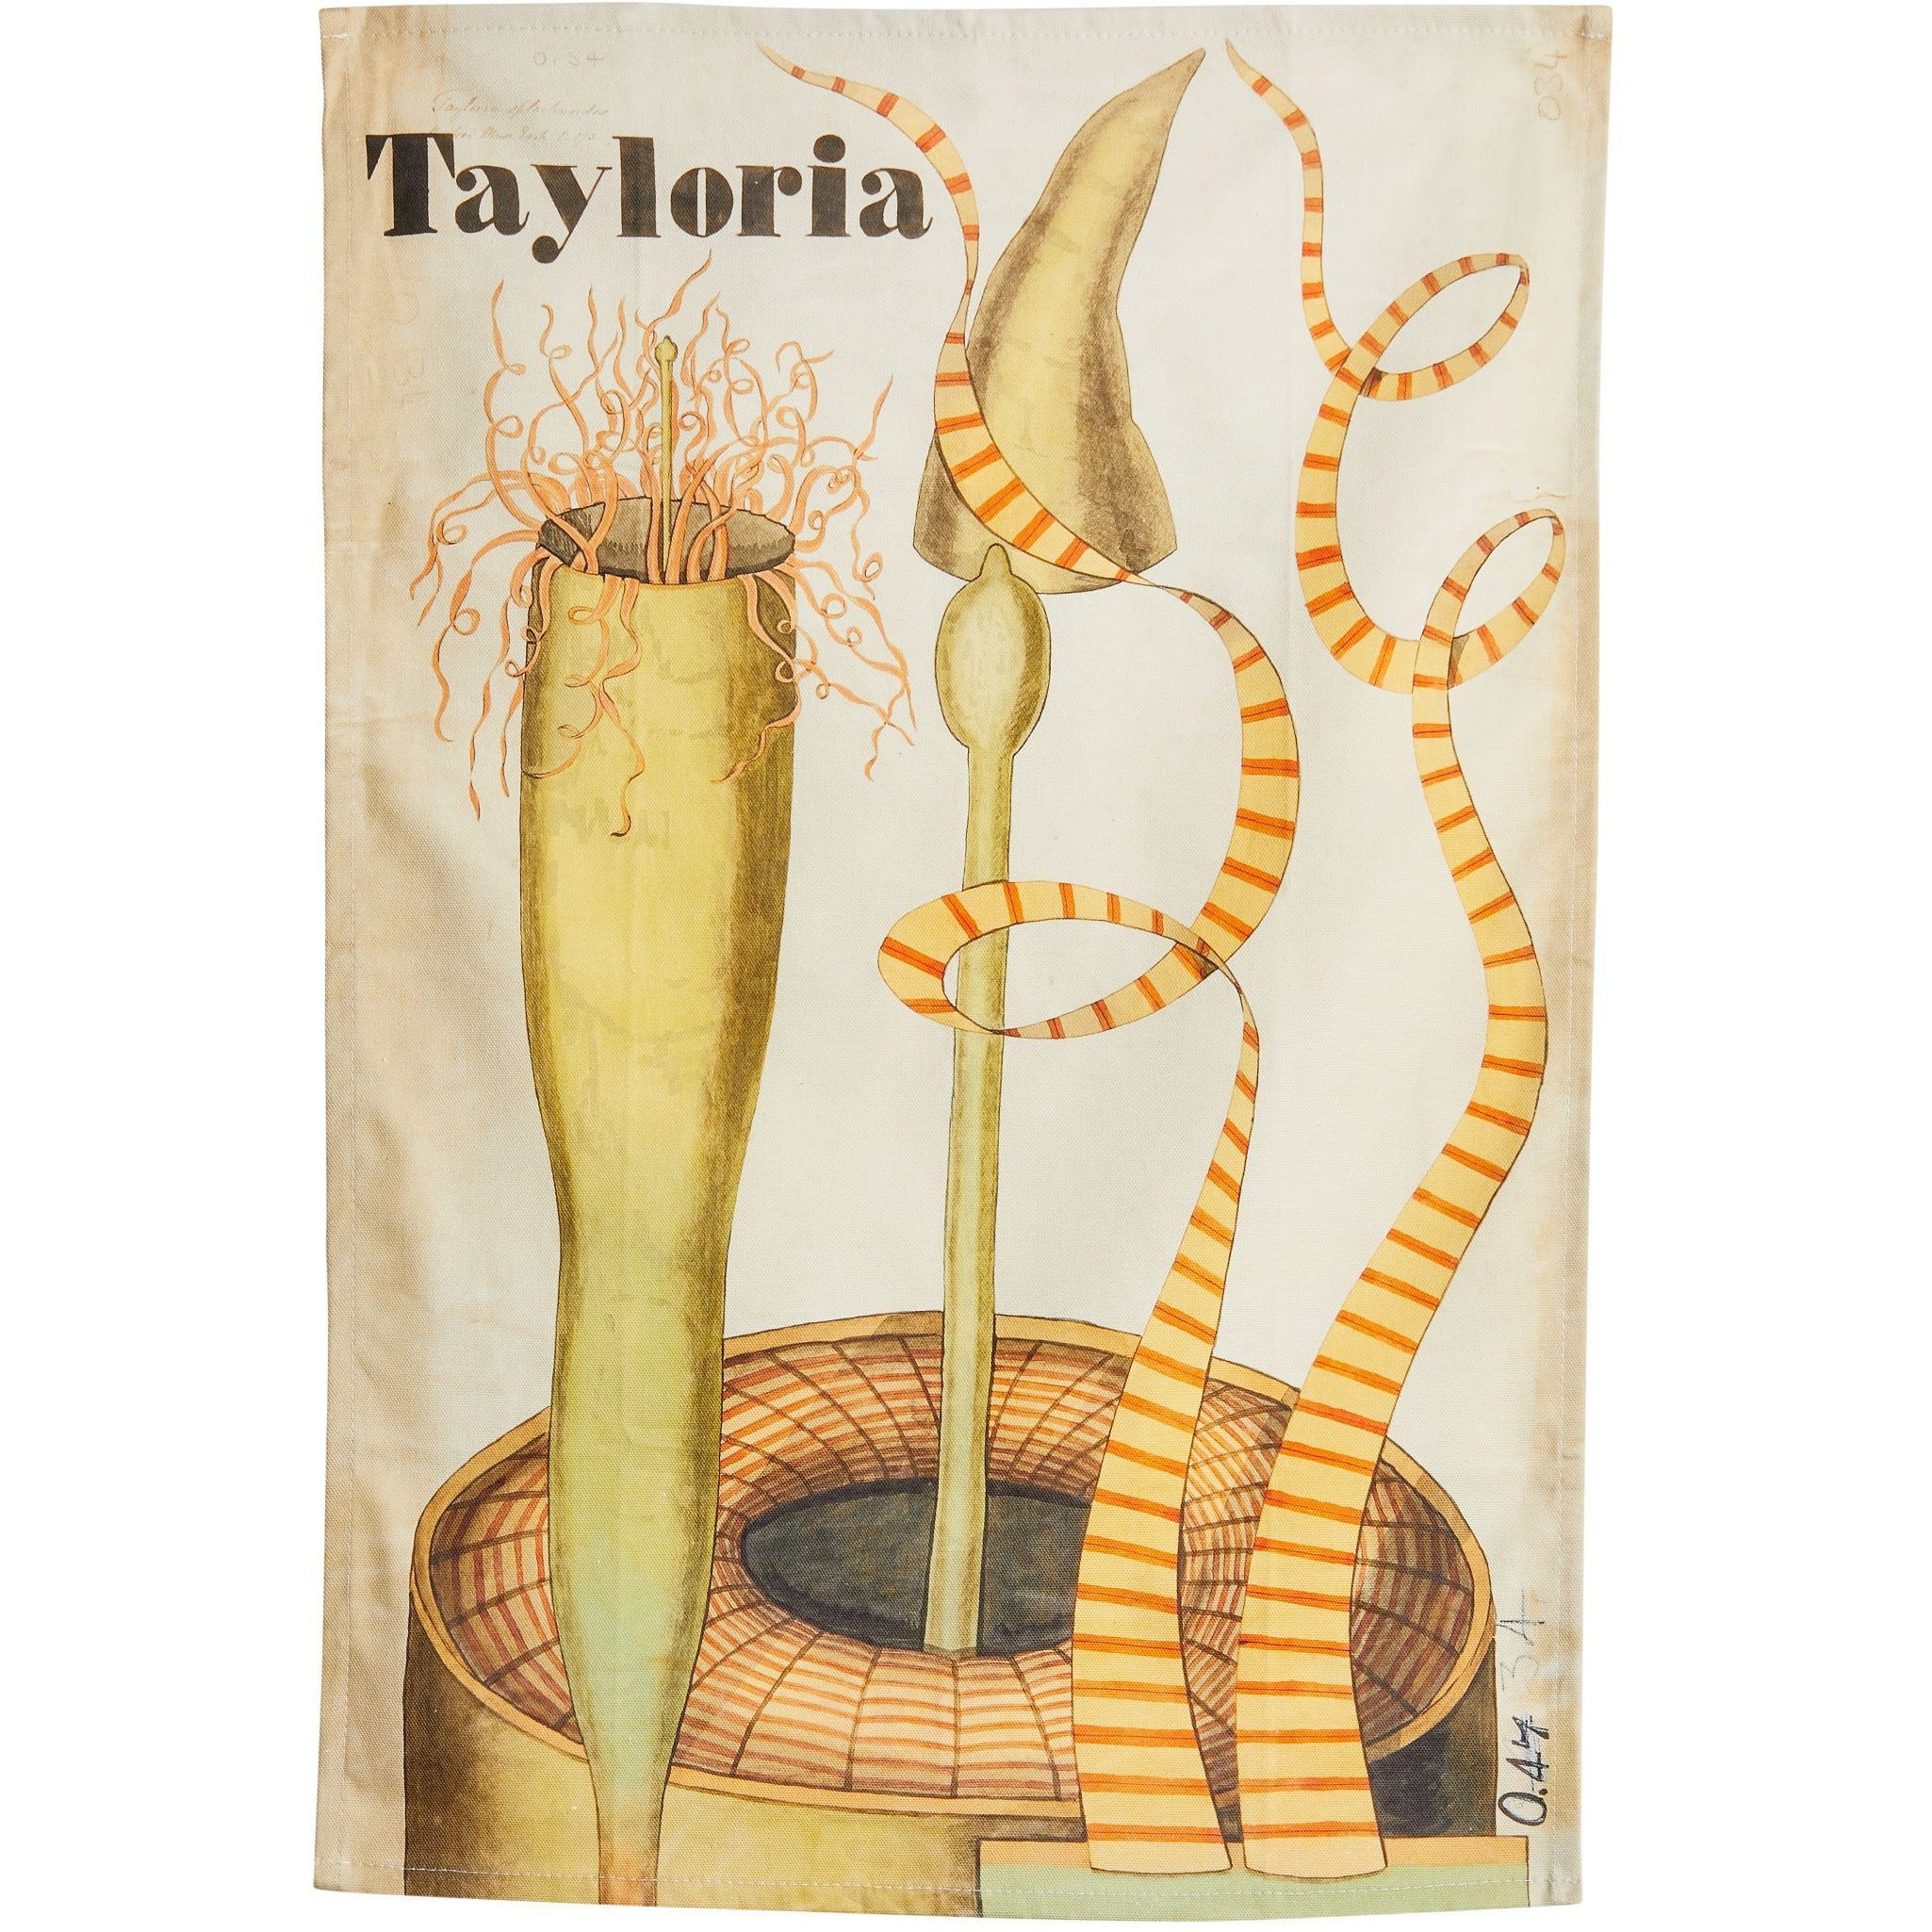 Featured image for the project: Henslow's Tayloria - Tea towel